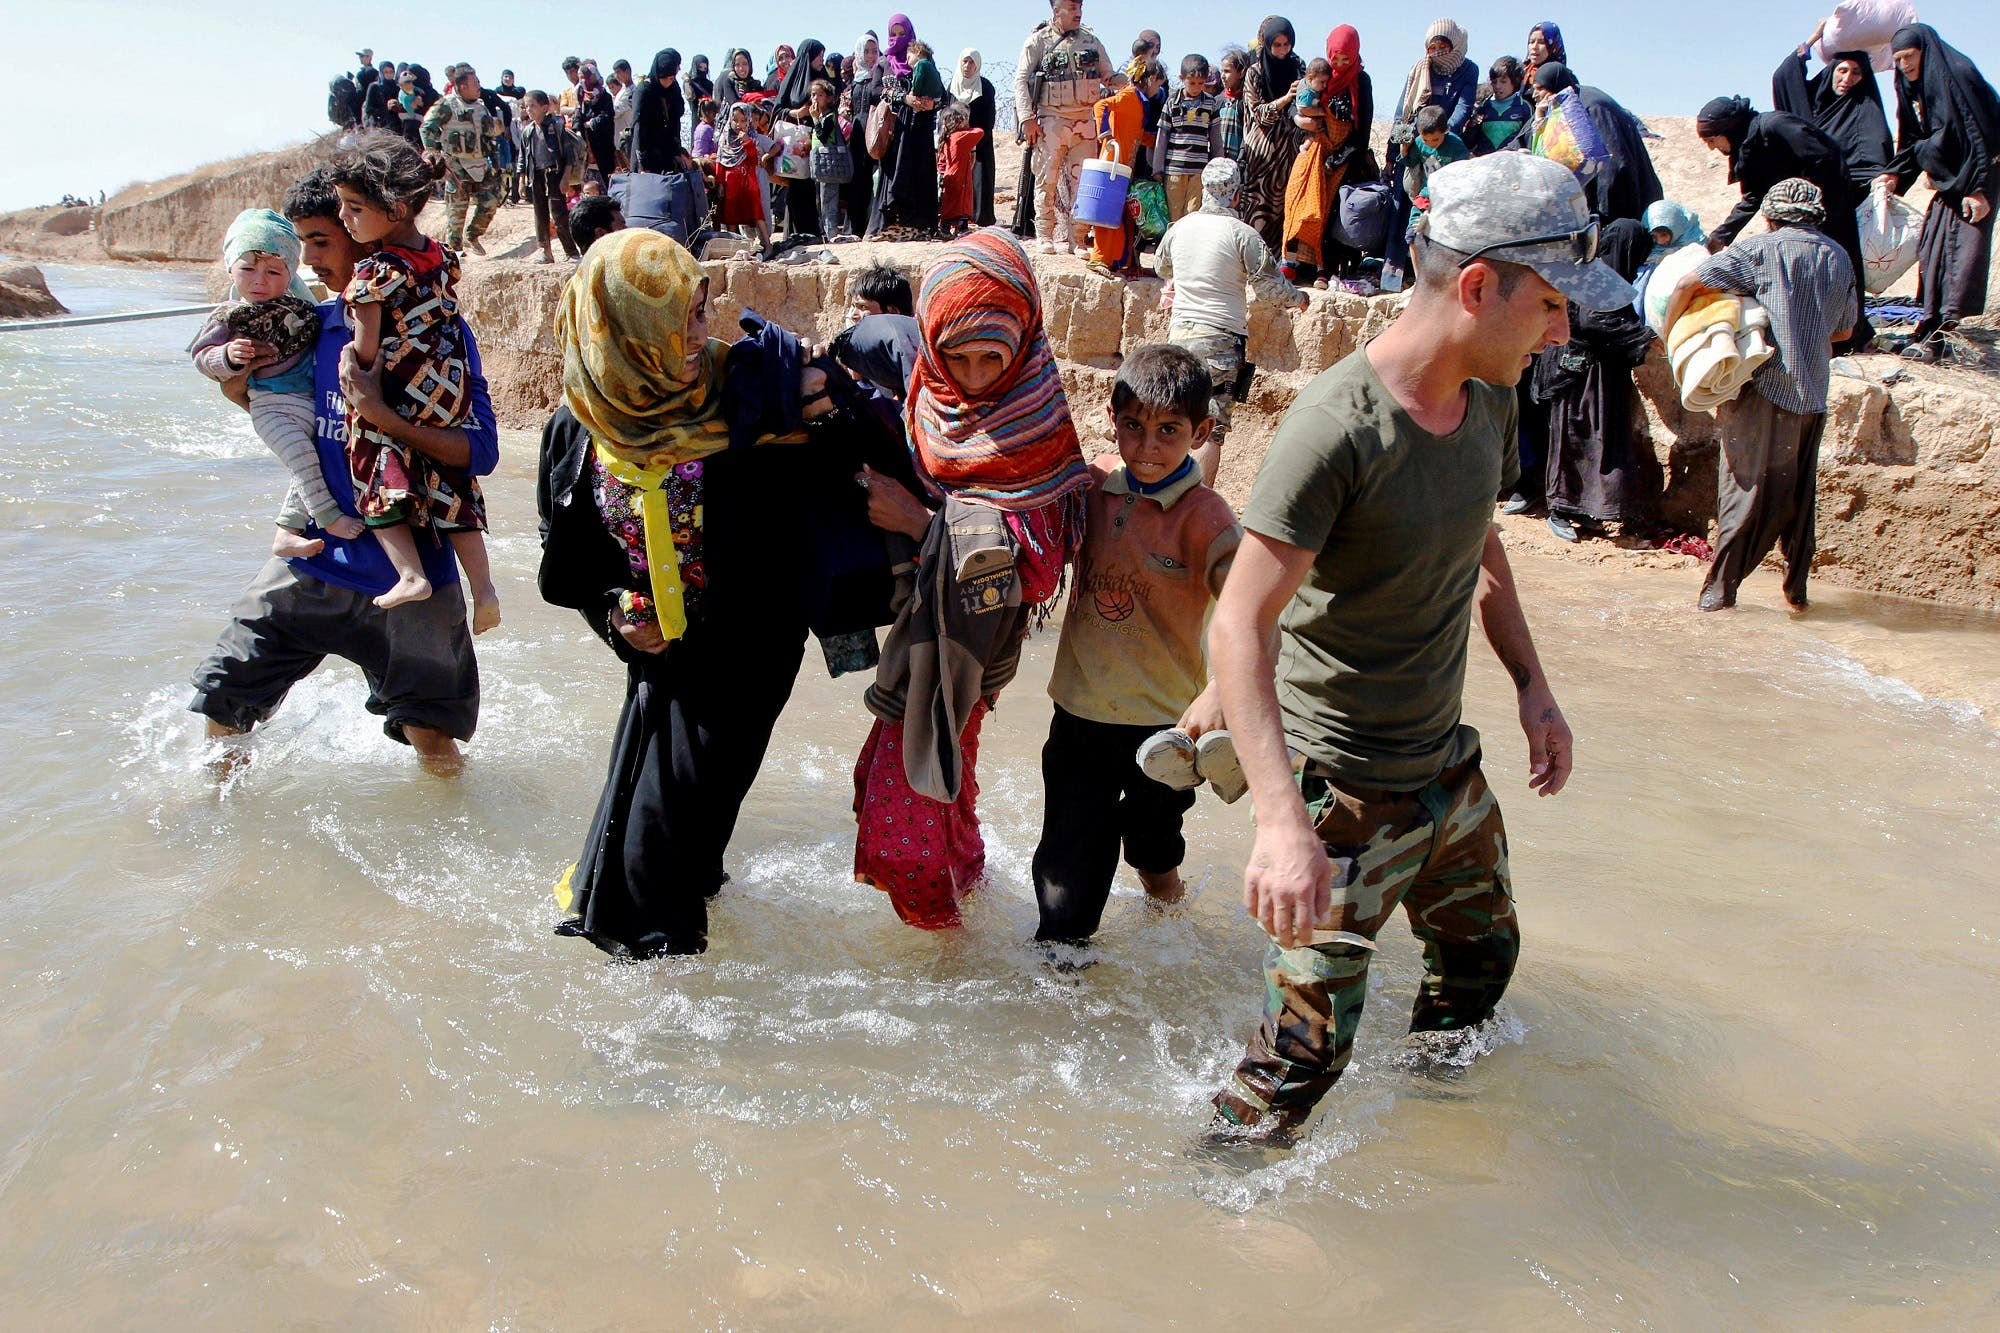 Displaced people, who fled from their homes in Hawija, cross the water to reach the other bank to be transported to camps for displaced people, in southwest of Kirkuk, Iraq, October 4, 2017. (Reuters)